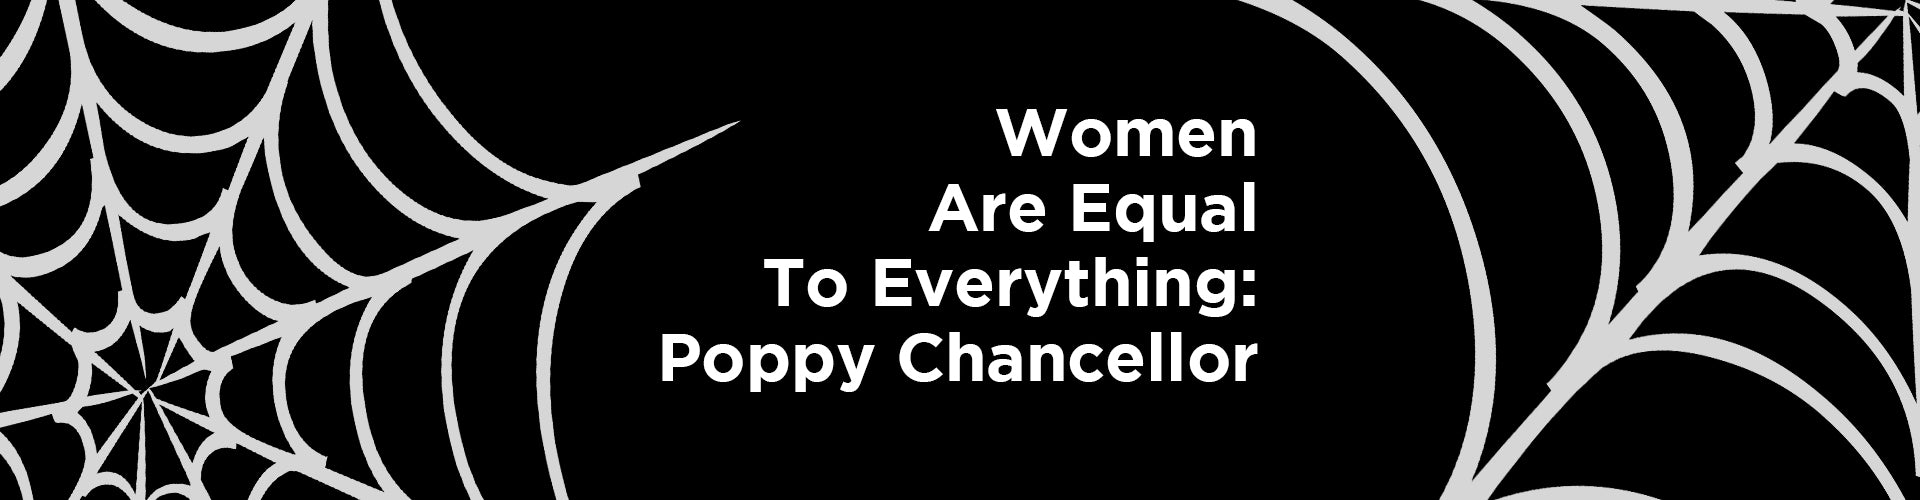 Women Are Equal To Everything: Meet Poppy Chancellor